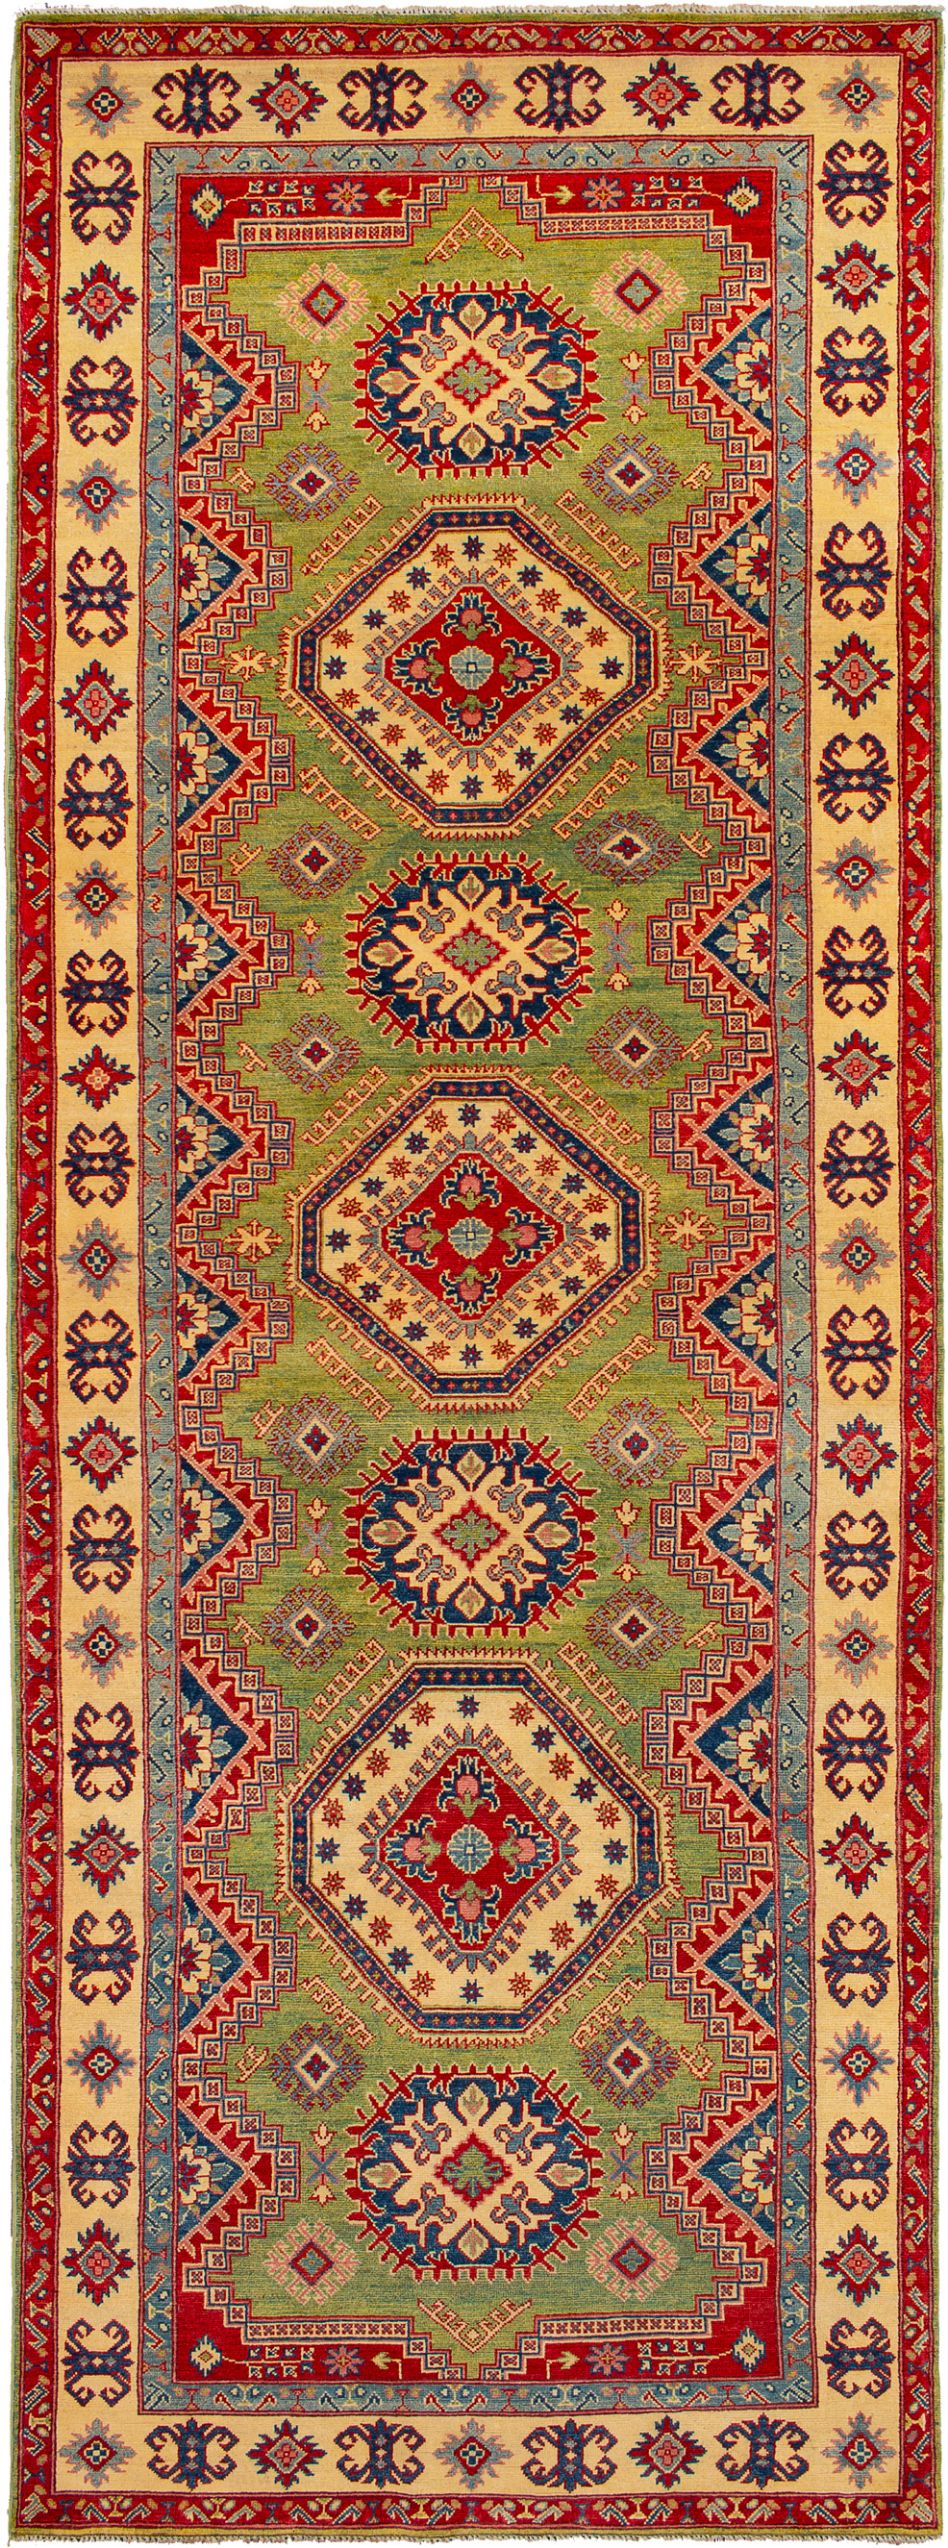 "Hand-knotted Finest Gazni Green Wool Rug 5'0"" x 13'11"" Product Image"